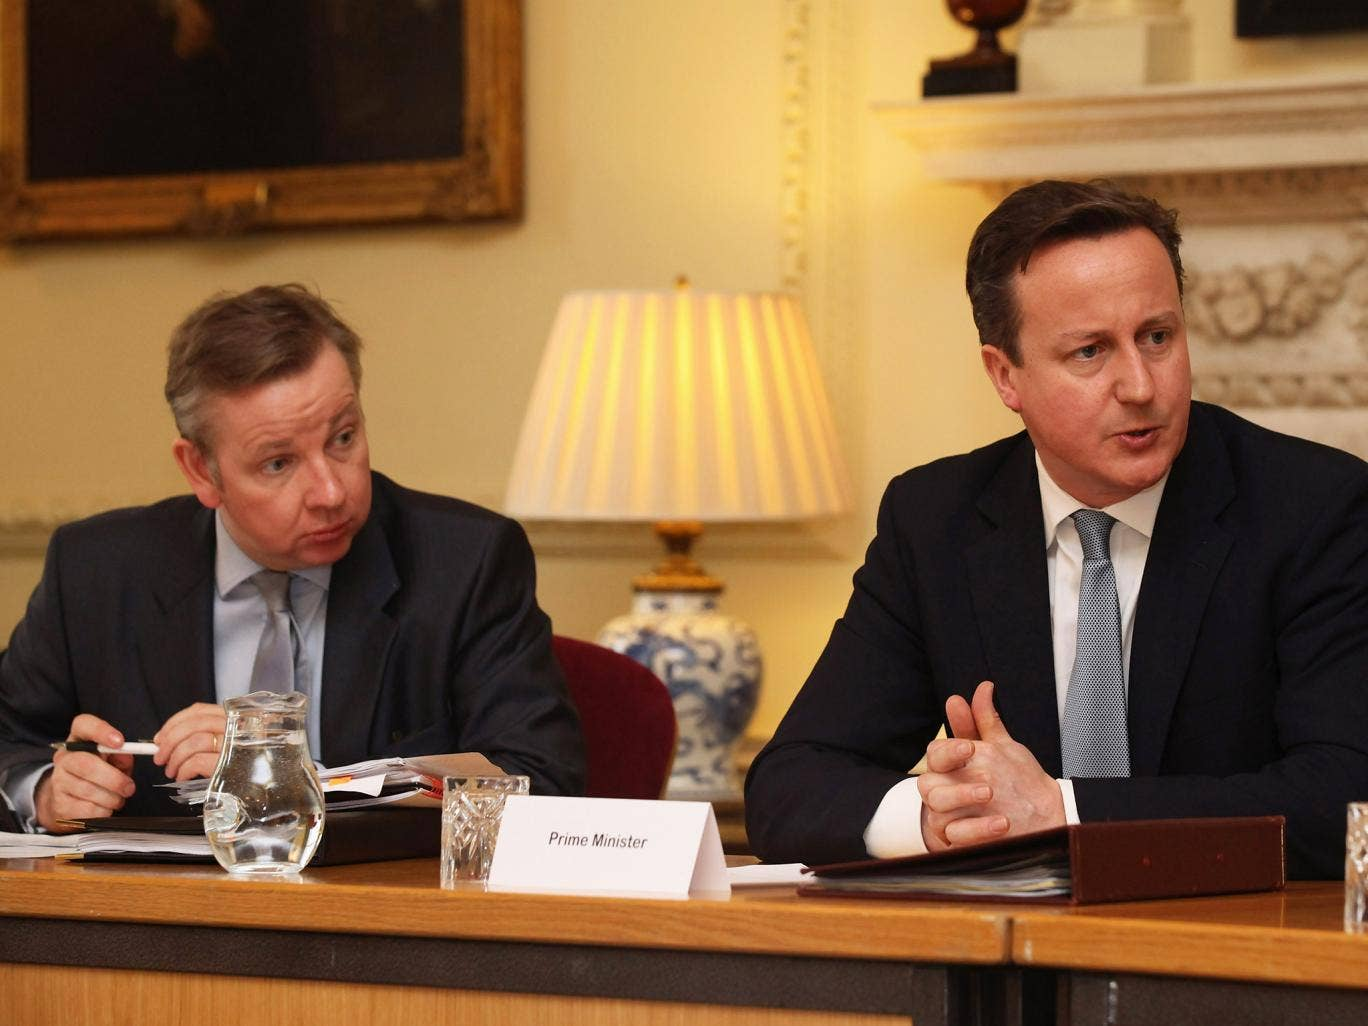 Michael Gove and David Cameron during a meeting on education in 2012